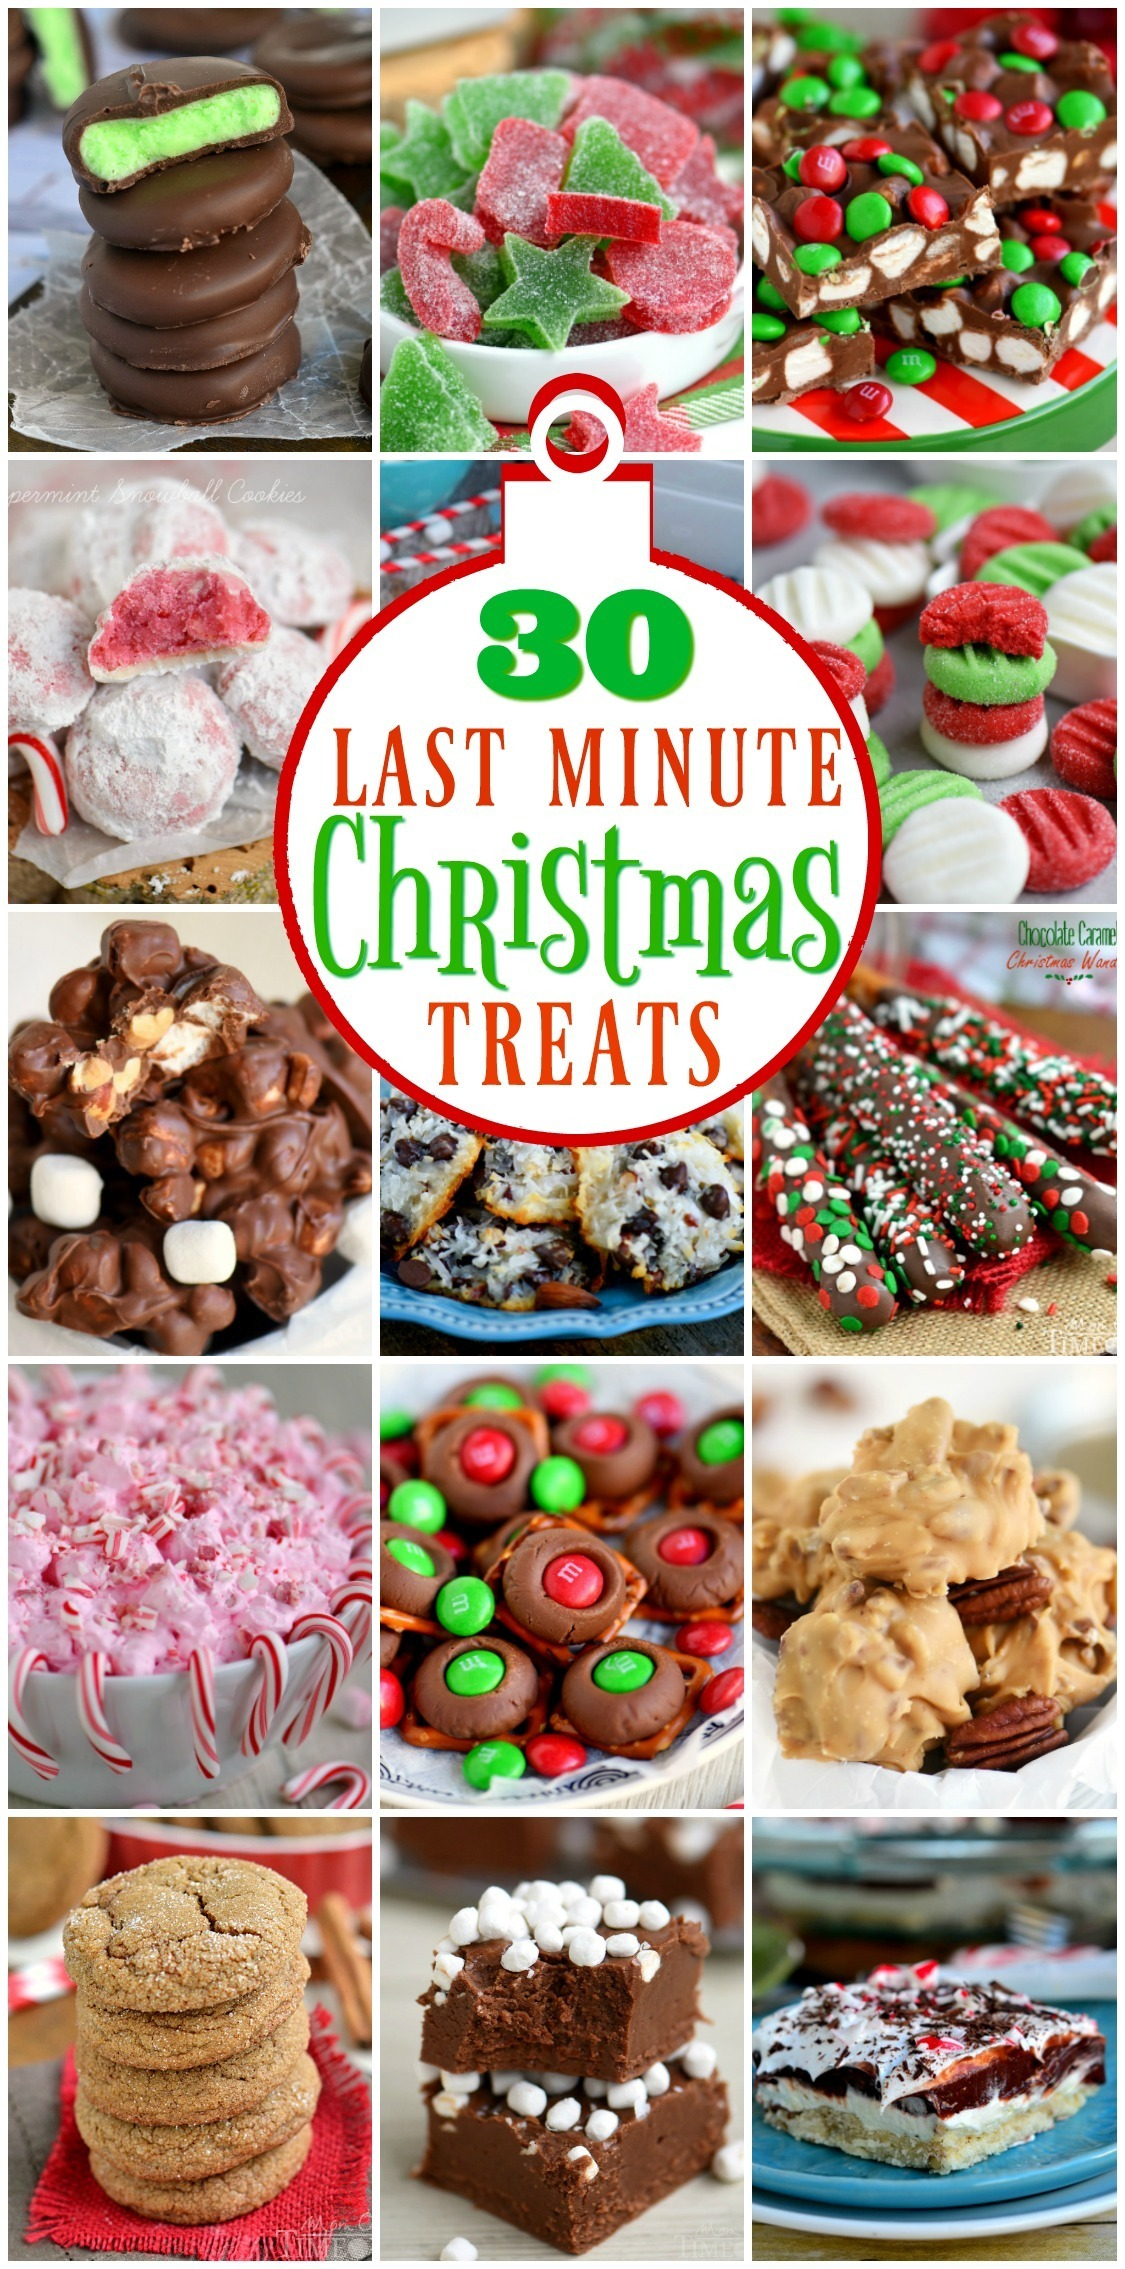 30 Last Minute Christmas Treats